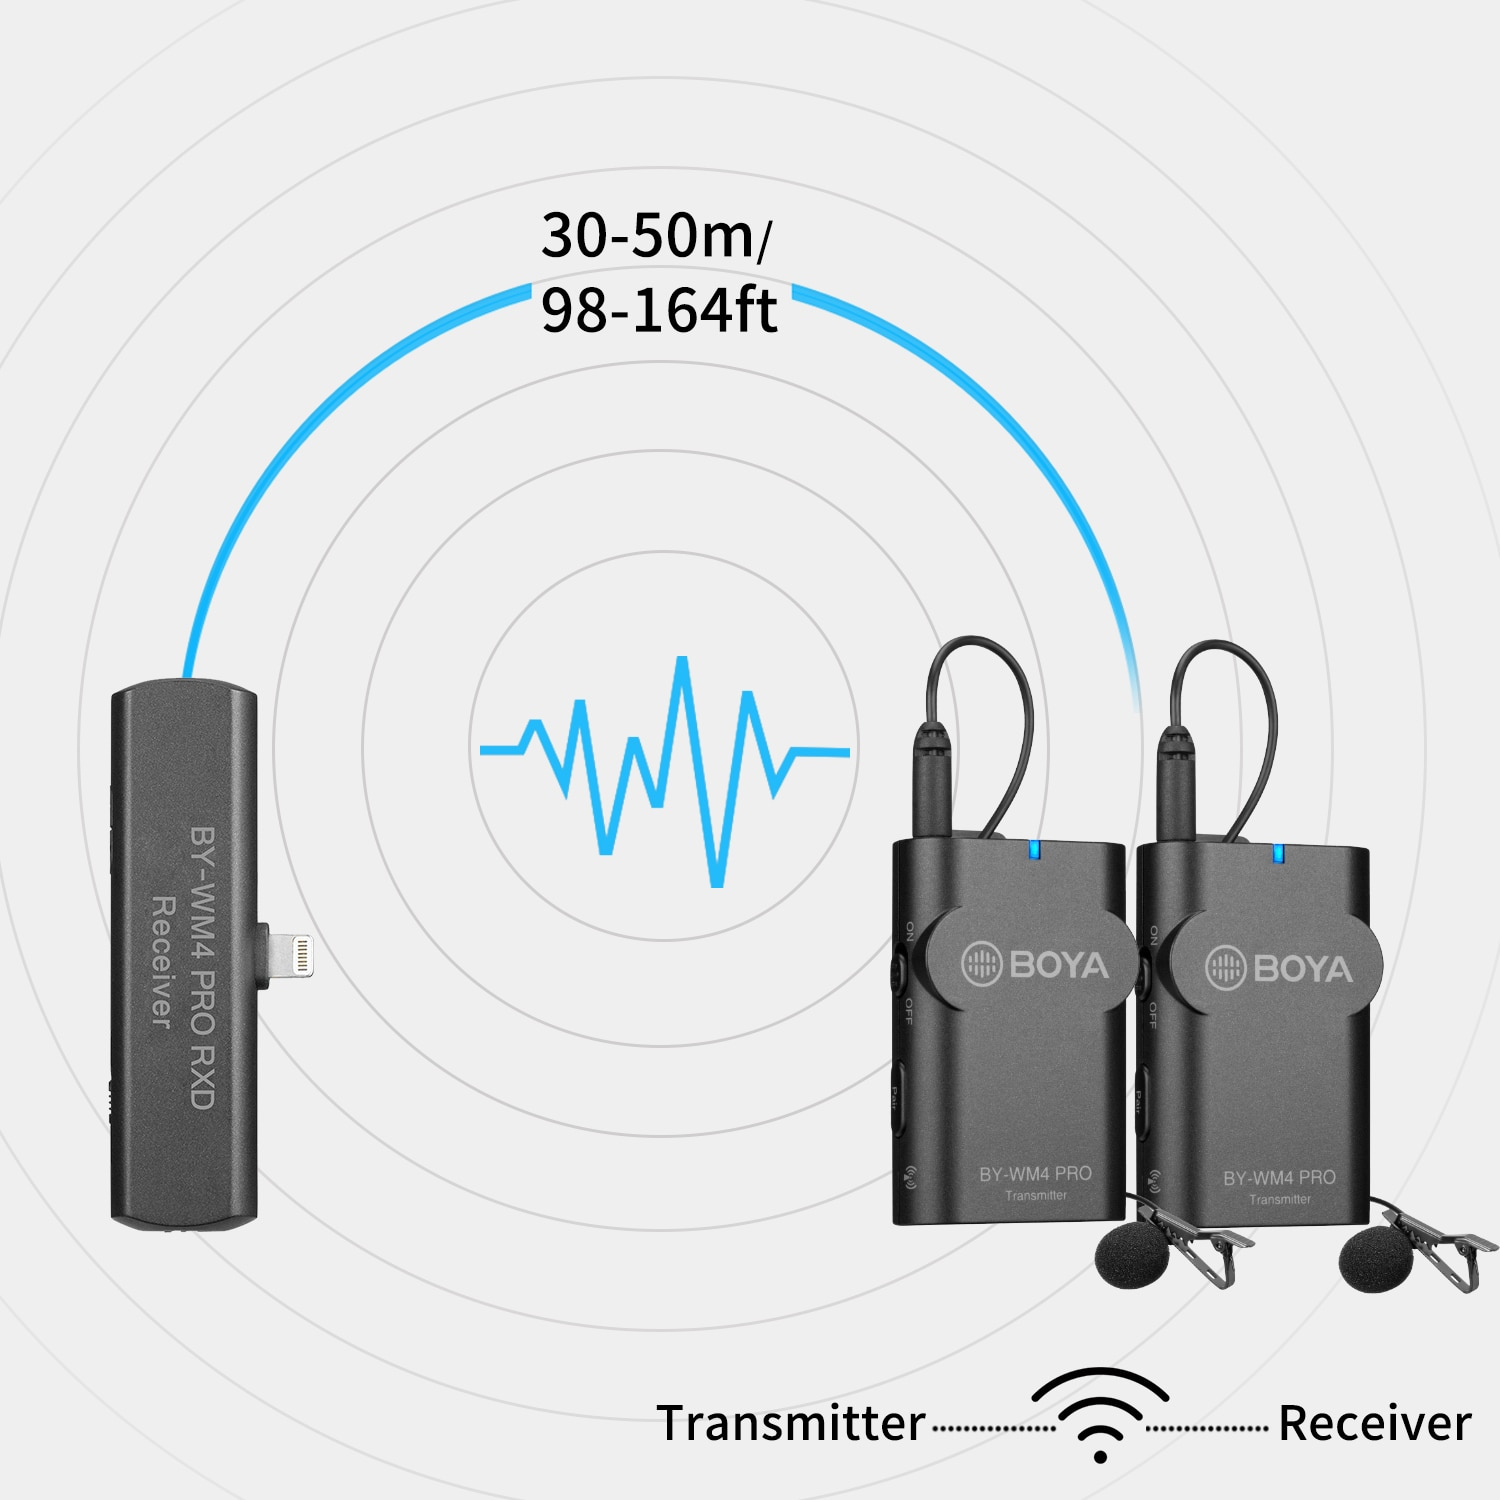 BOYA BY-WM4 PRO 2.4G Wireless Lavalier Microphone Vlog for DSLR Camera iPhone Android Interviews Reporting Vloggings Podcasts enlarge